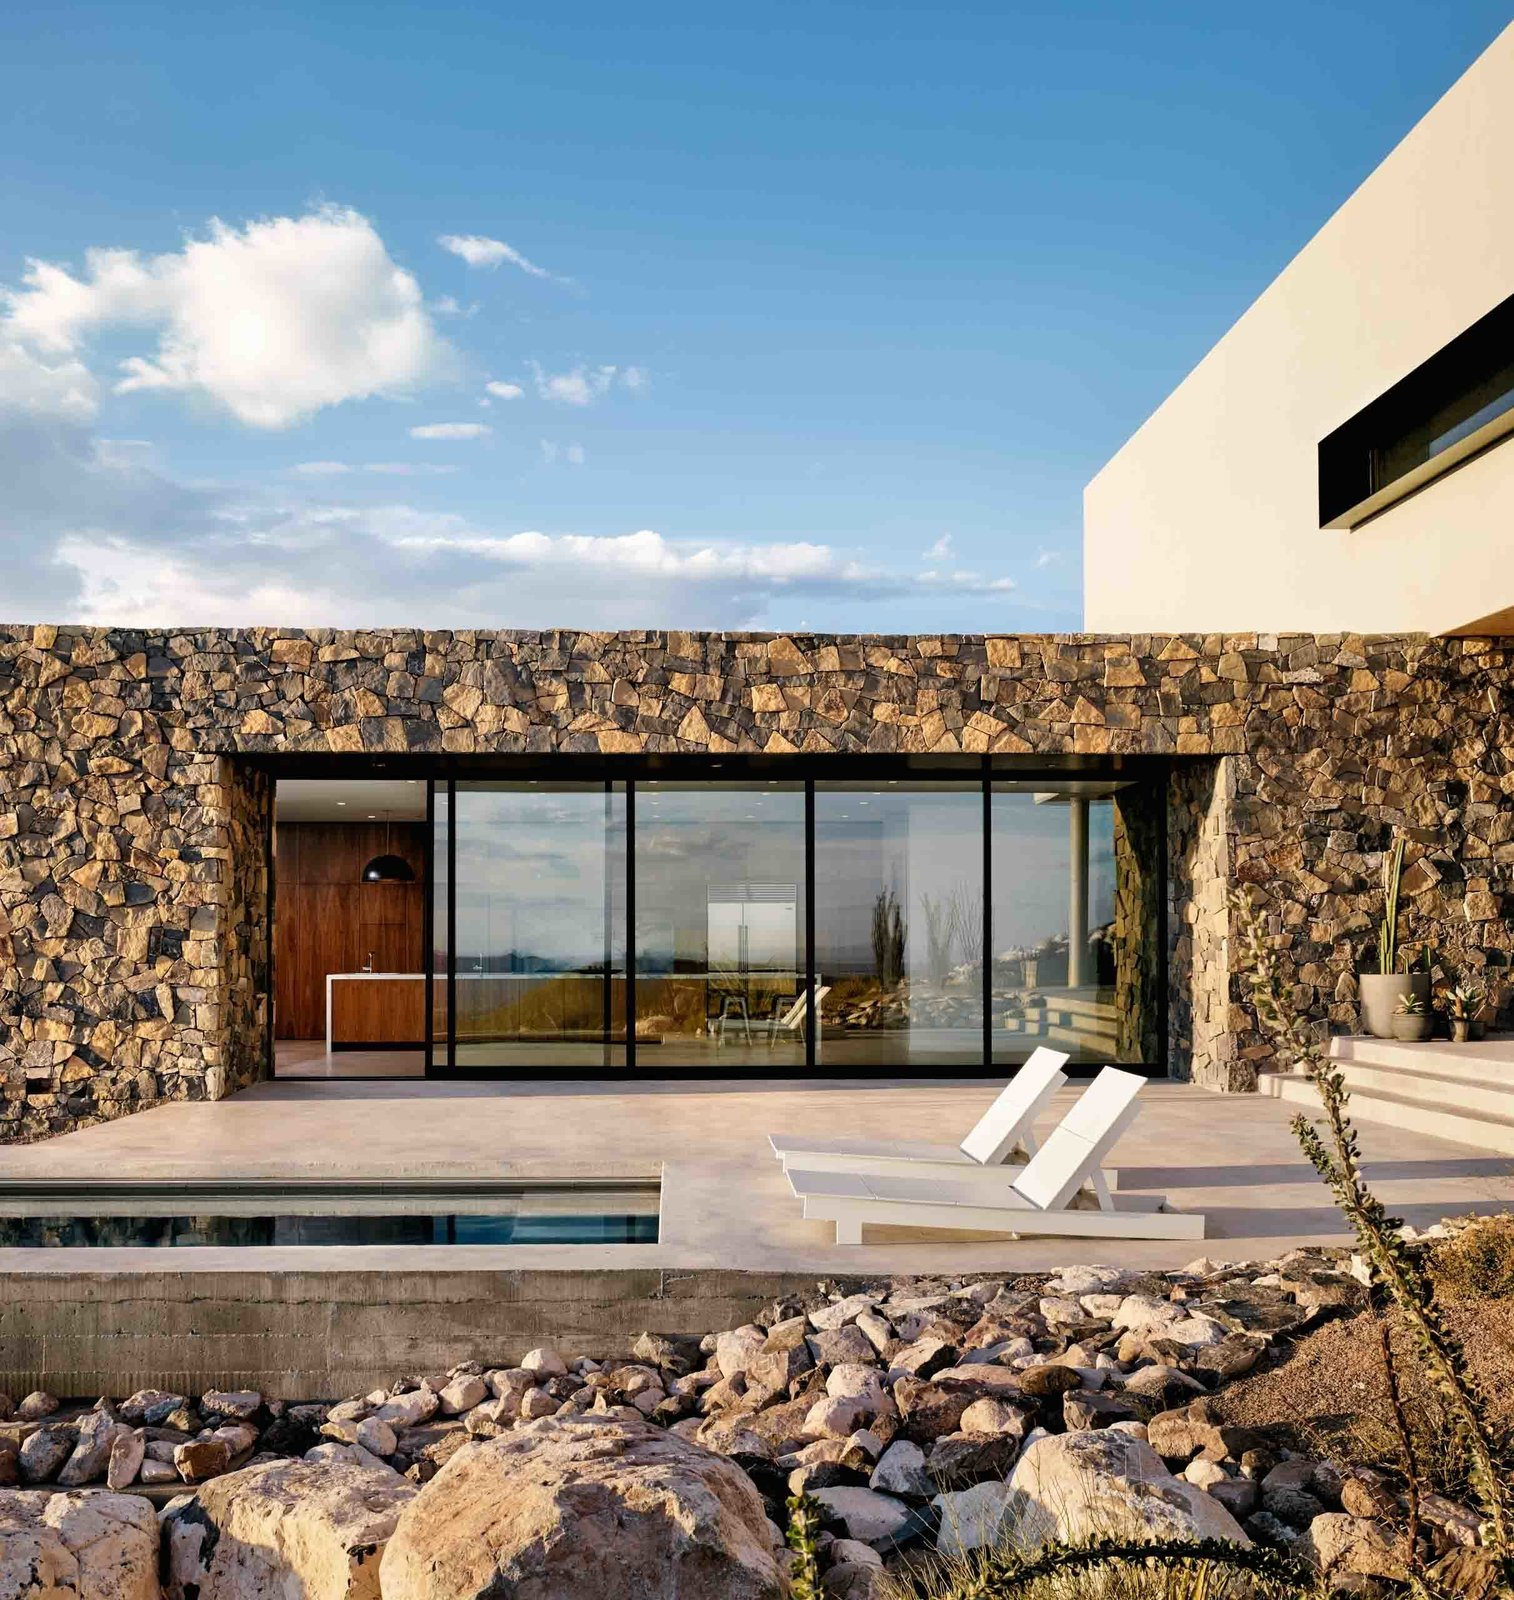 When the massive west-facing multi-slide door is open, cool Texas breezes course through the home's main volume.  West Texas Vistas by Western Window Systems